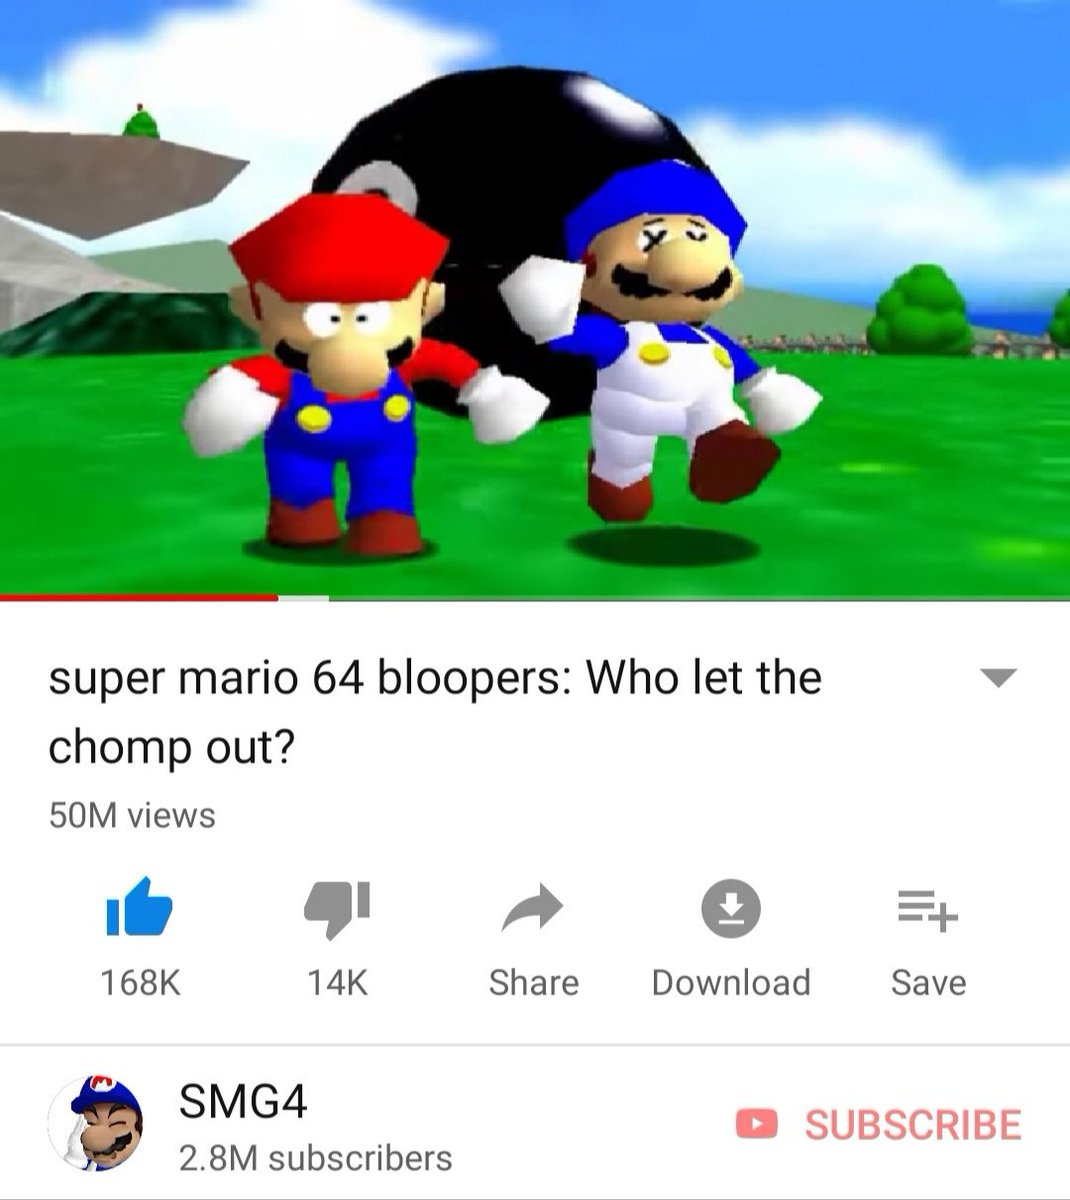 Super Mario 64 Bloopers Series 2 Charcathers Roblox Lt03 Lt03offical Twitter